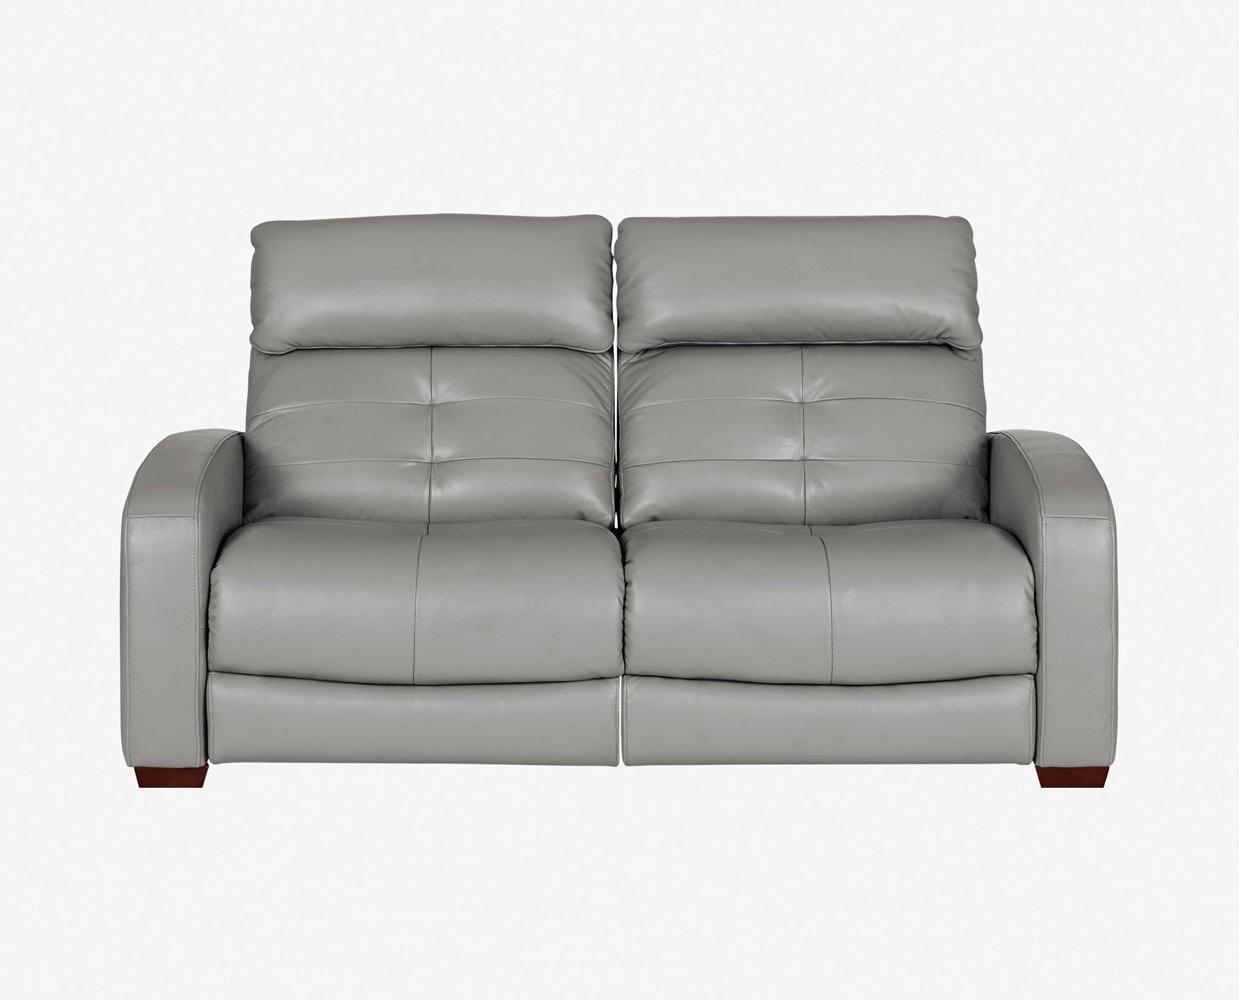 Clyde Grey Leather 3 Piece Power Reclining Sectionals With Pwr Hdrst & Usb Intended For Fashionable Diverting Luxury Lear Recliner Loveseat Larus Power Motion Sofa (View 6 of 20)